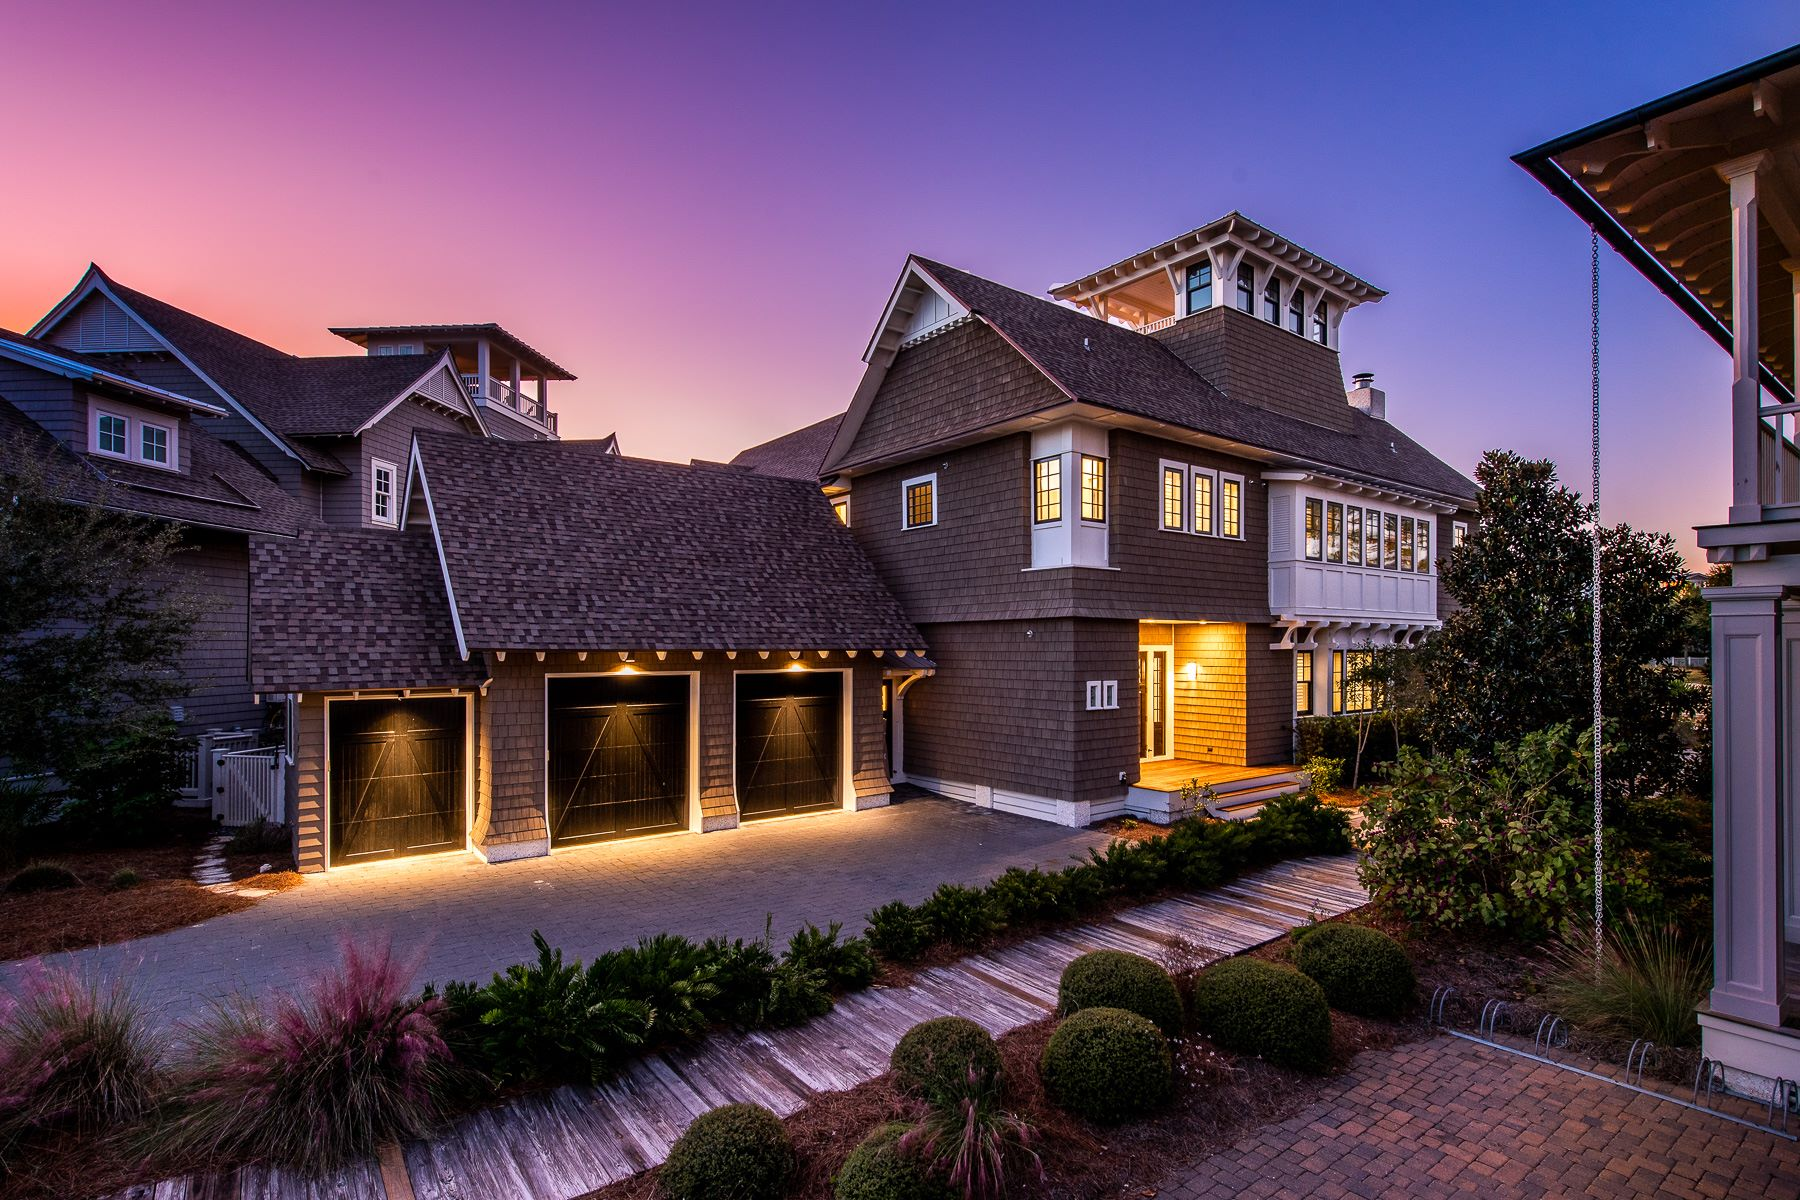 Single Family Homes for Sale at Crown Jewel in WaterSound with Private Pool and Enchanting Pond 47 Compass Point Way Santa Rosa Beach, Florida 32459 United States